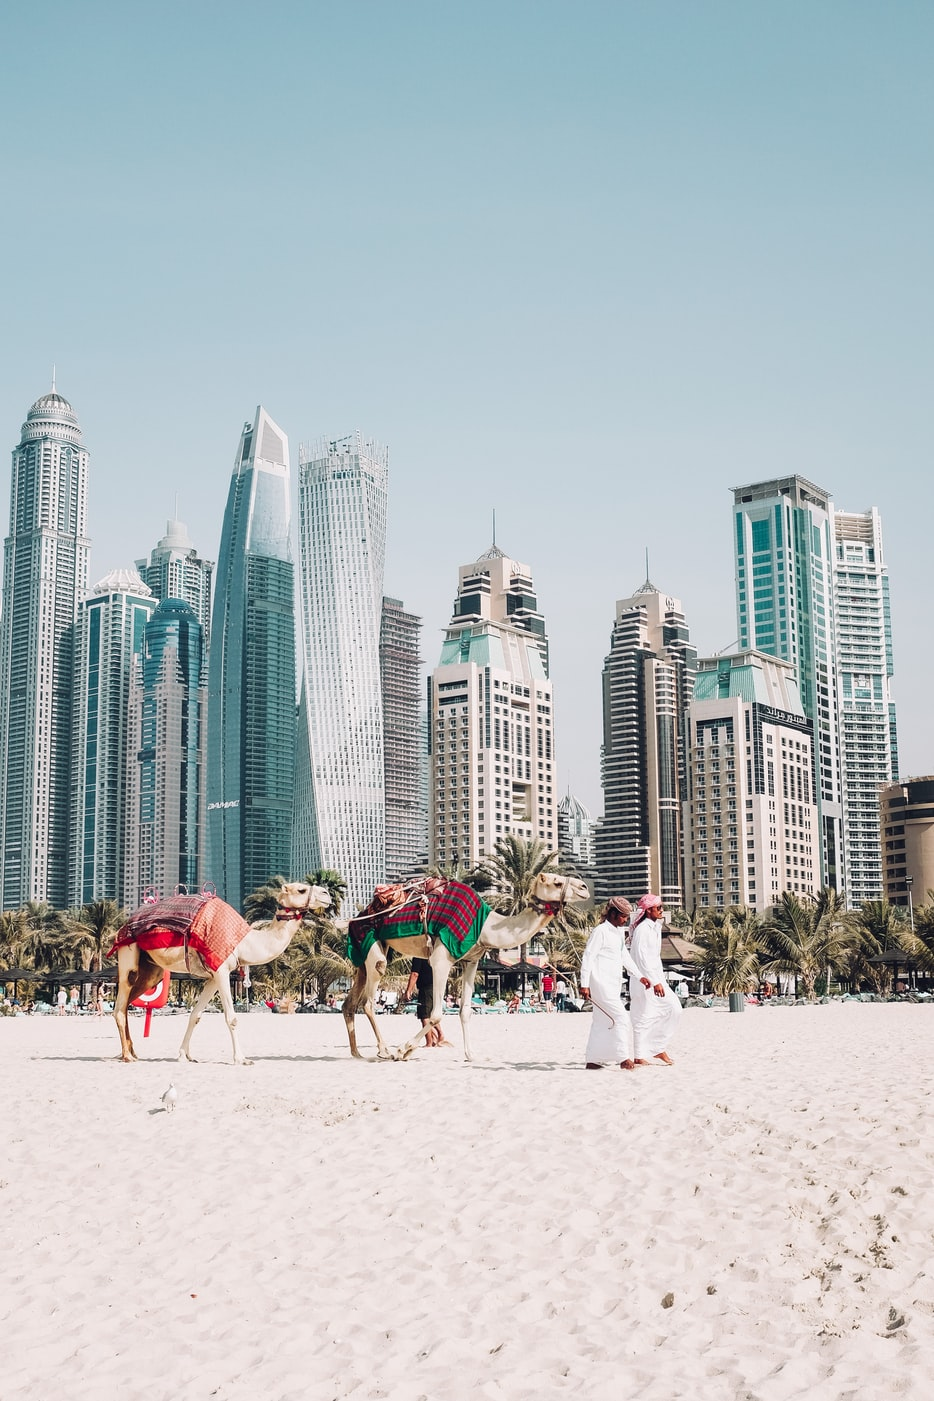 camels being walked on the beach in Dubai